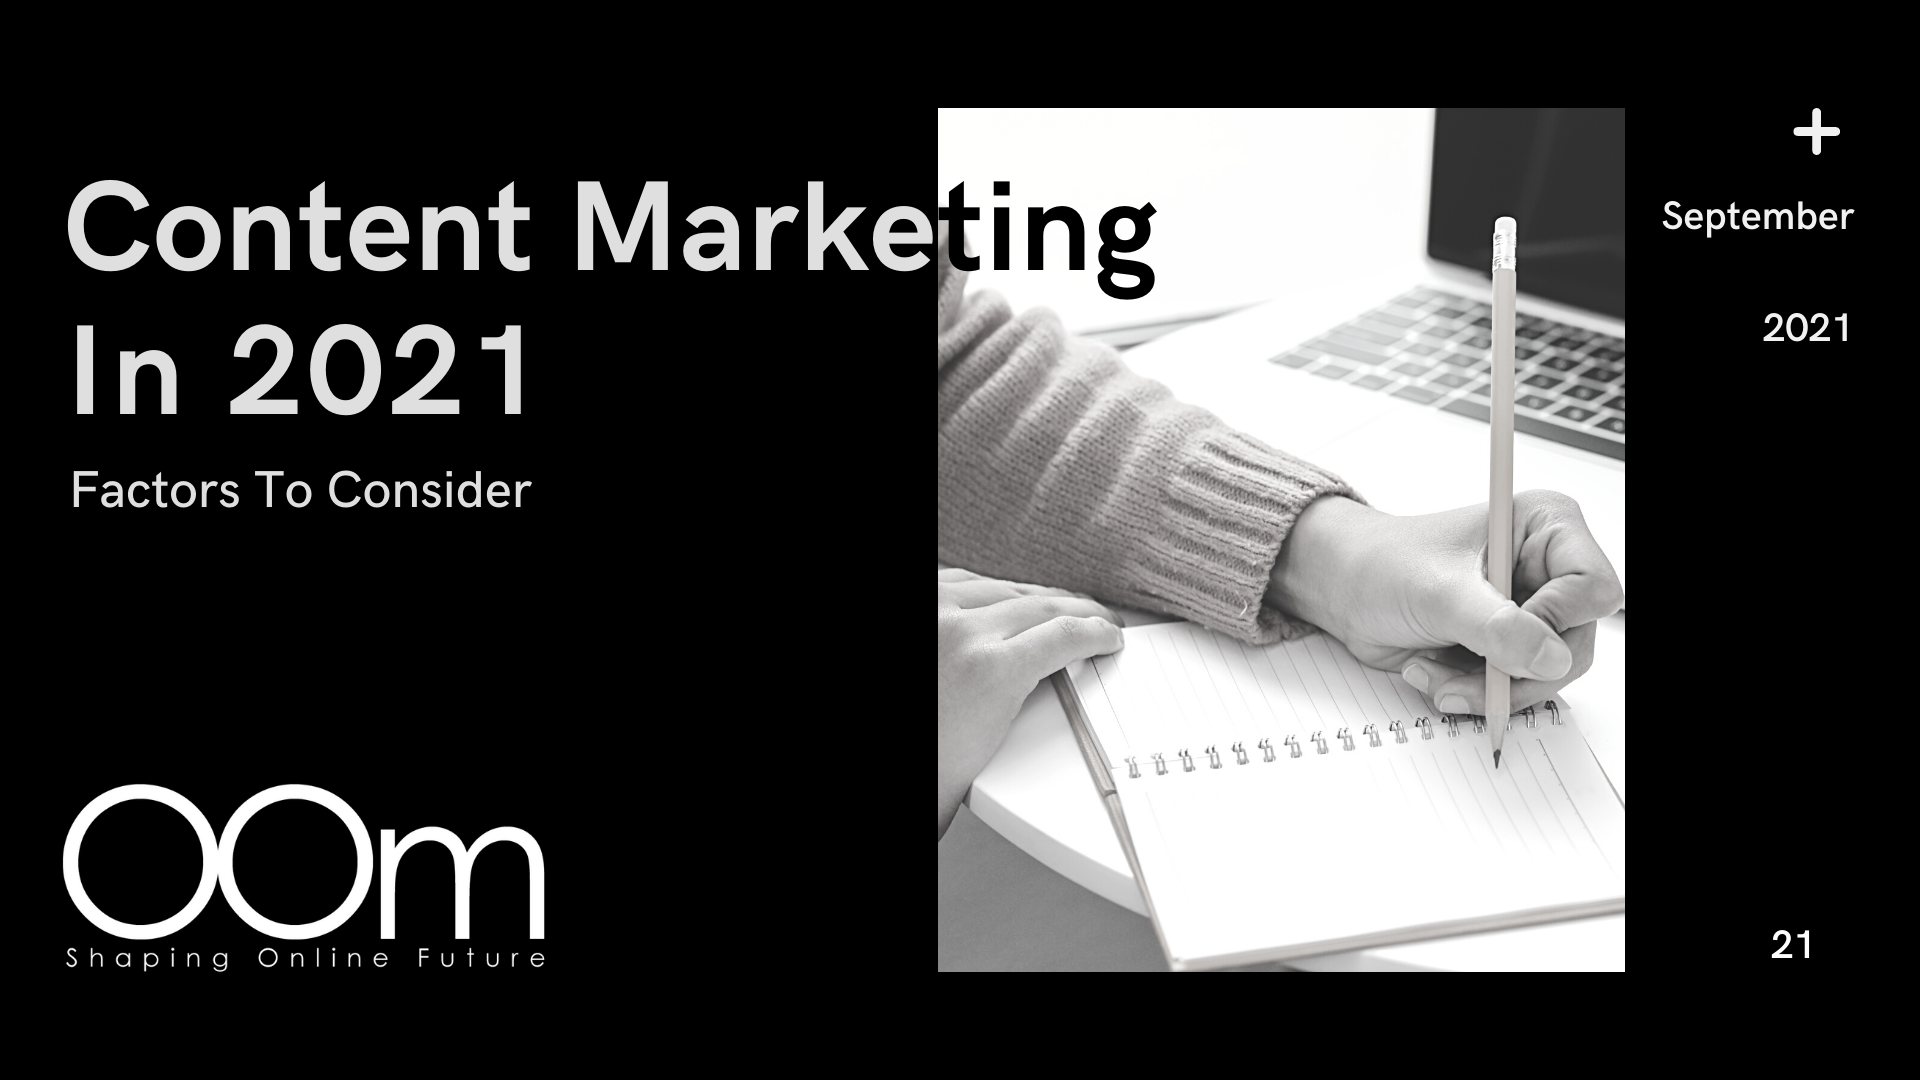 Content Marketing In 2021 Factors To Consider